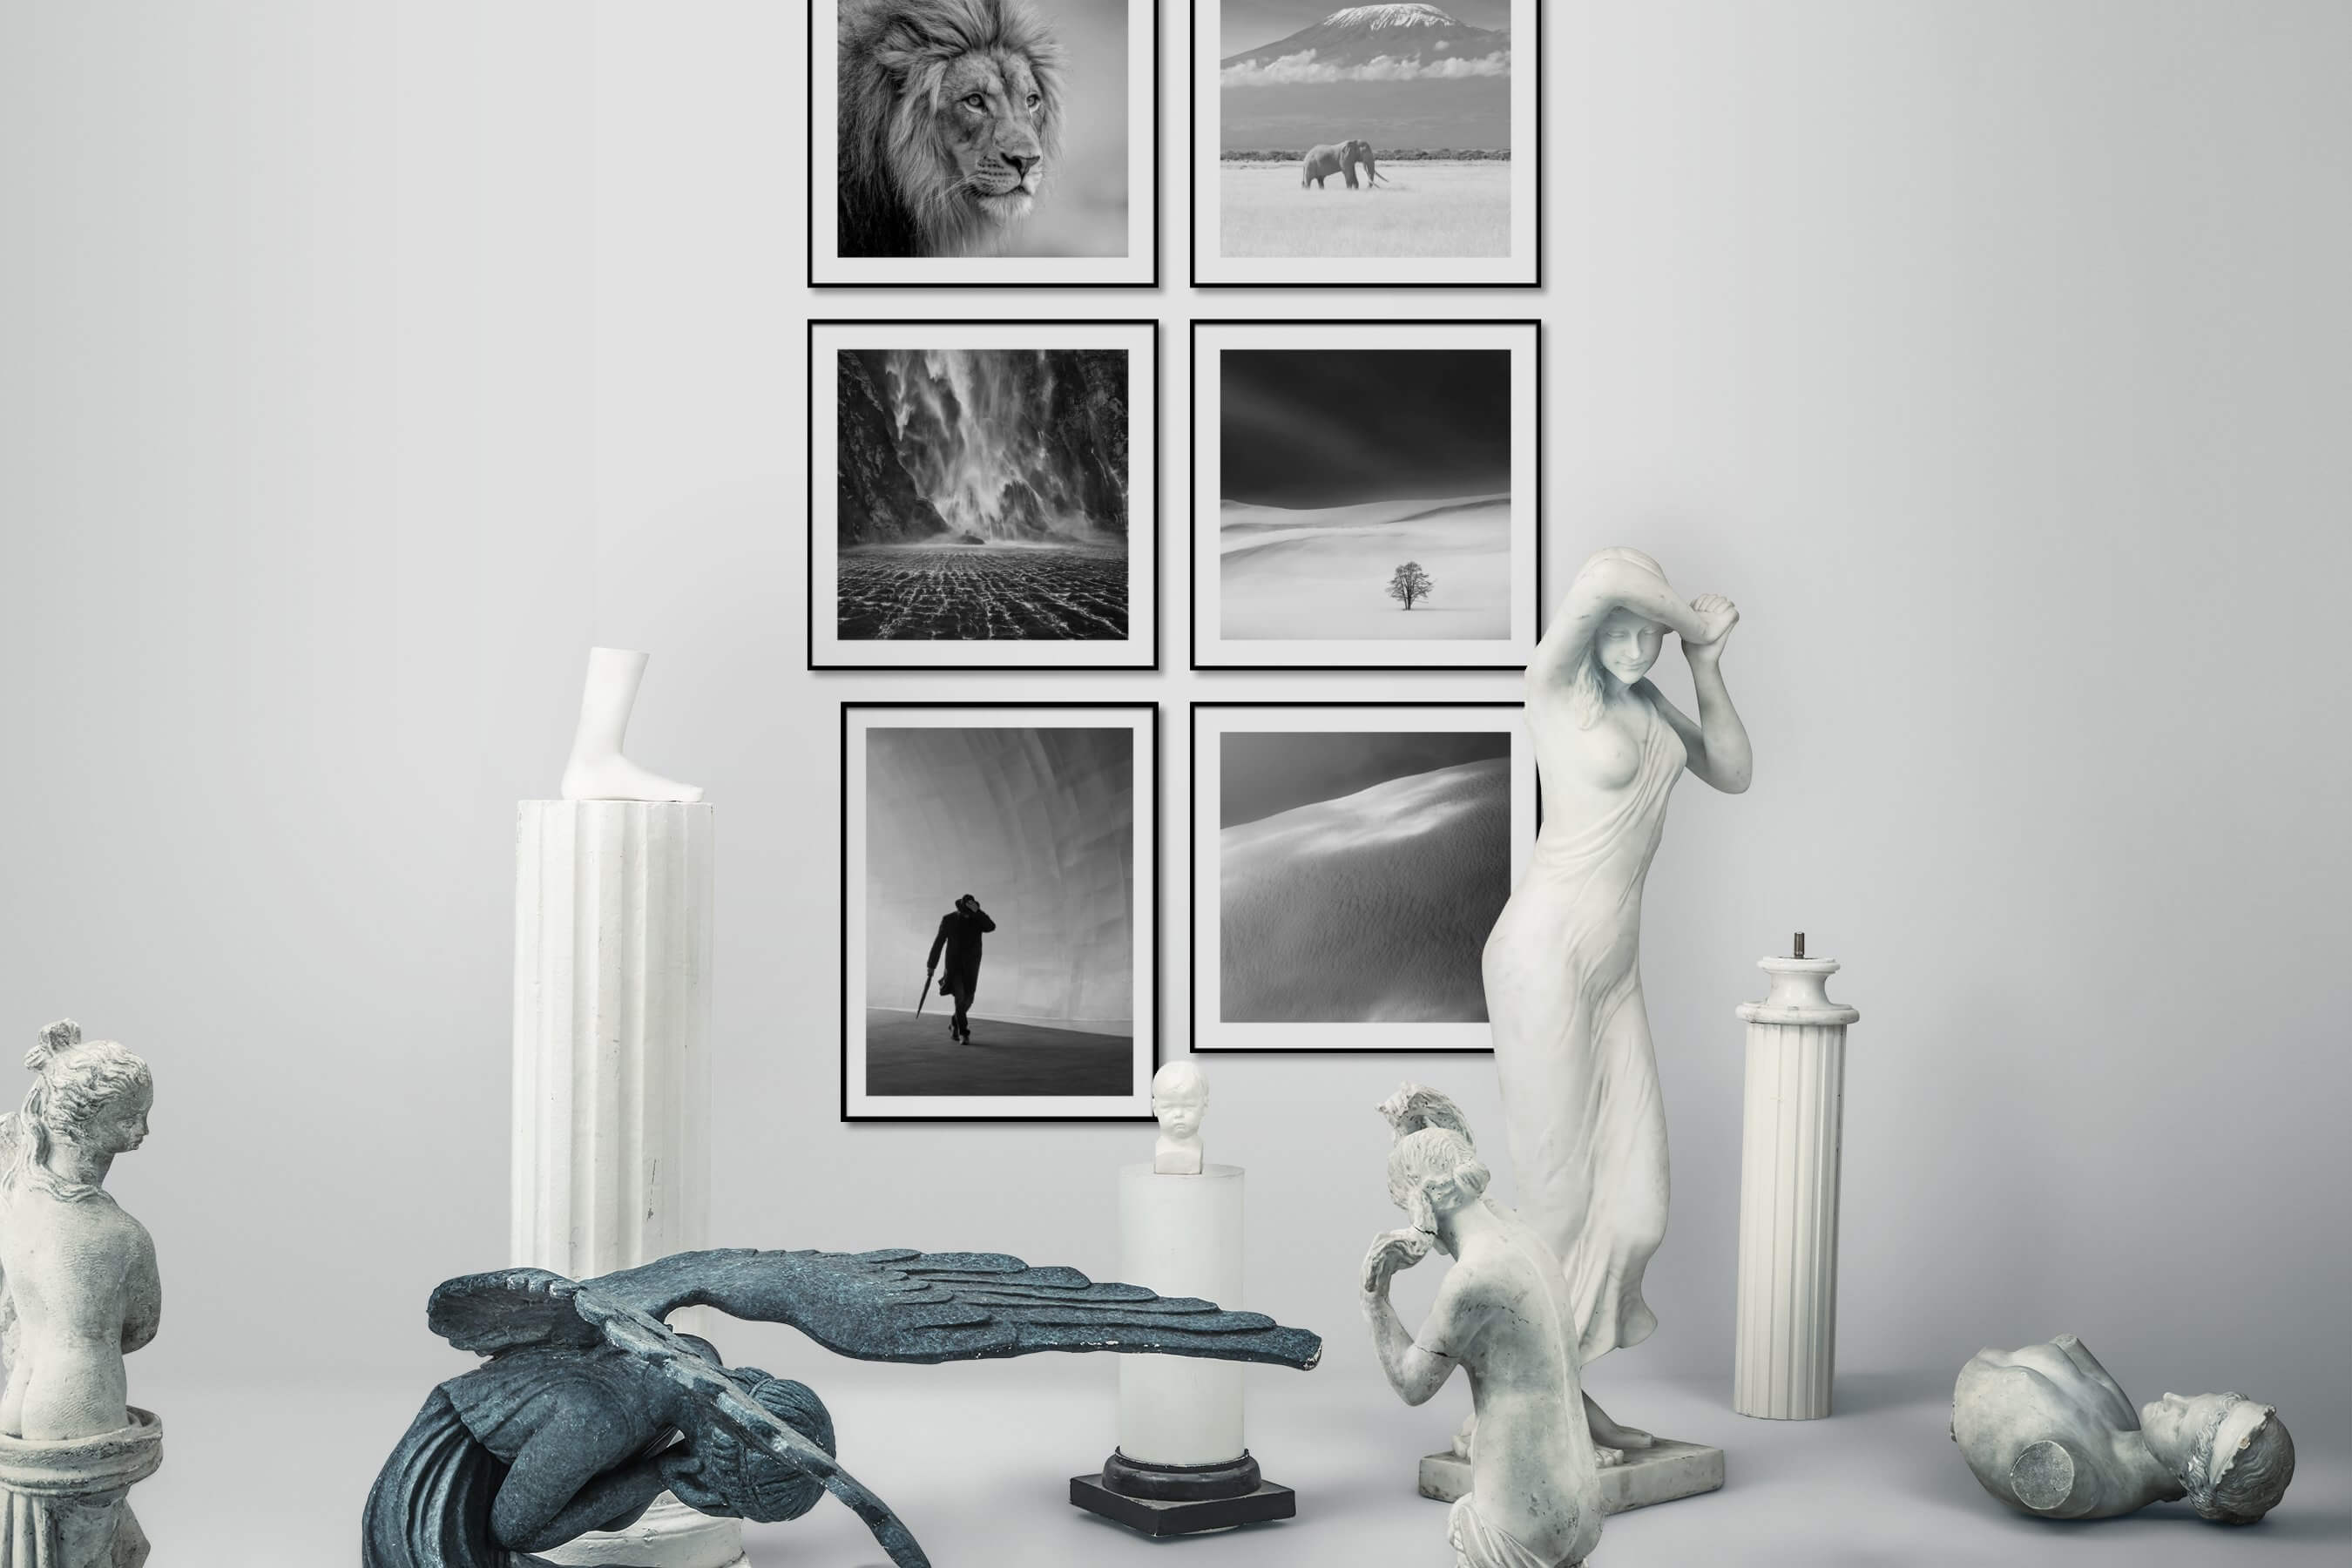 Gallery wall idea with six framed pictures arranged on a wall depicting Black & White, Animals, Nature, and For the Minimalist